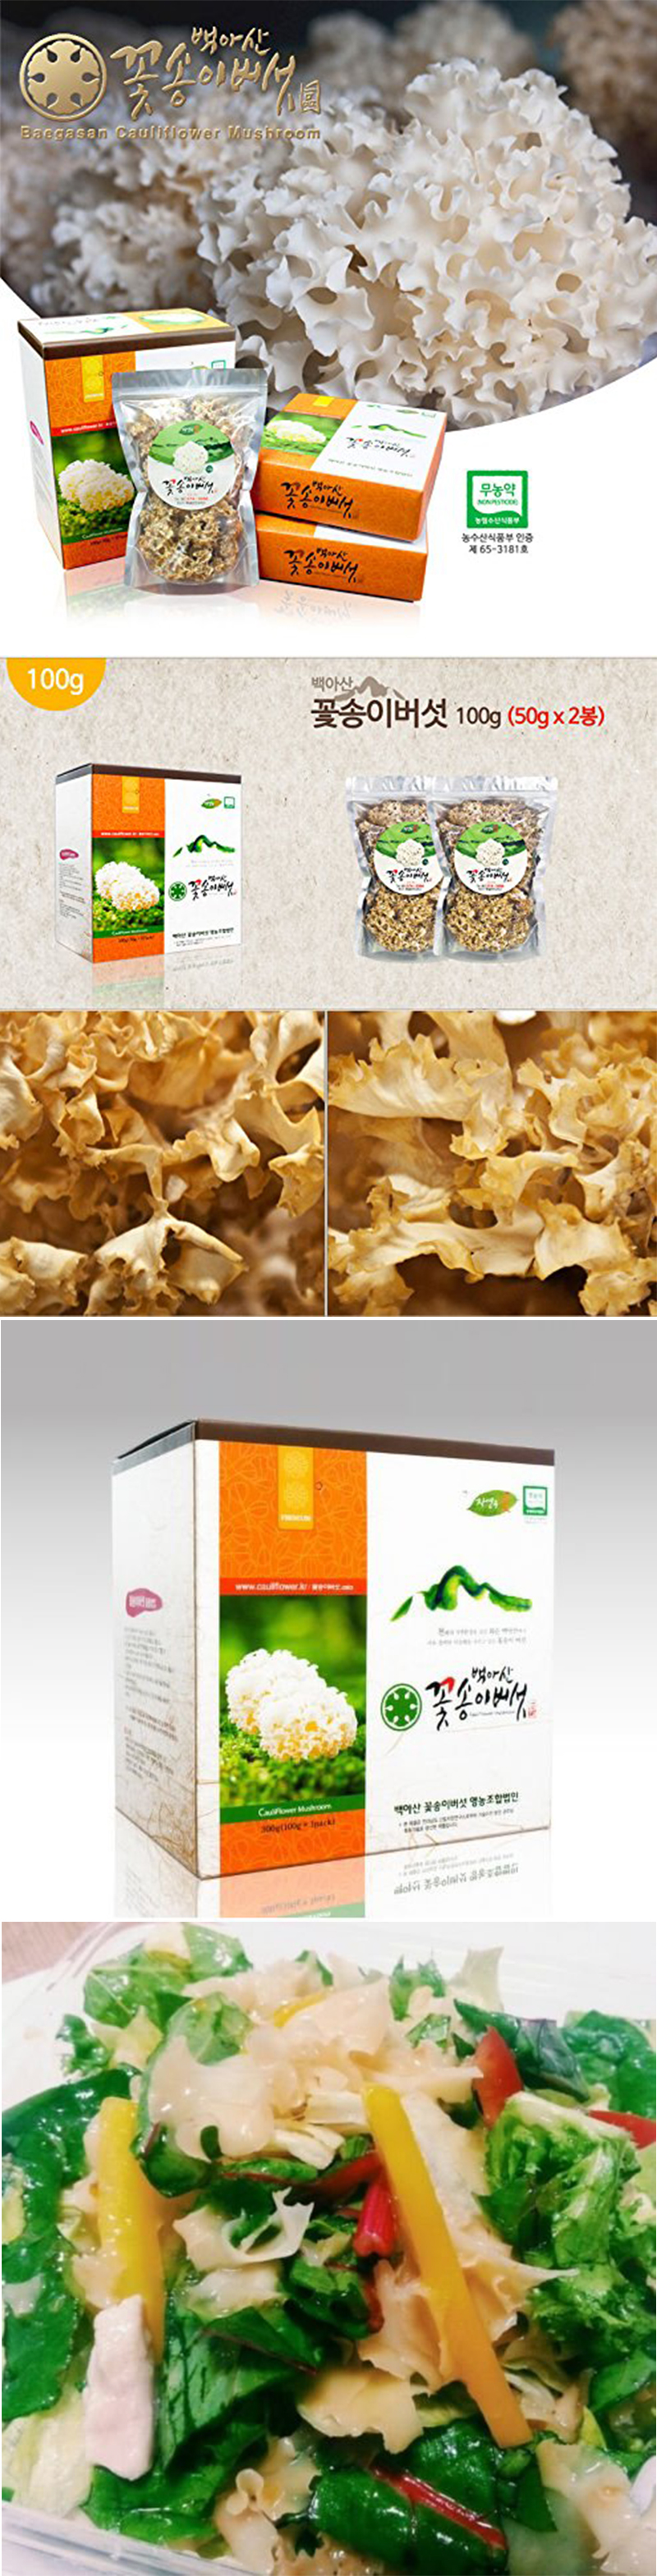 dried-cauliflower-mushroom-sparassis-crispa-natural-antibiotic-anticancer-100g-dec